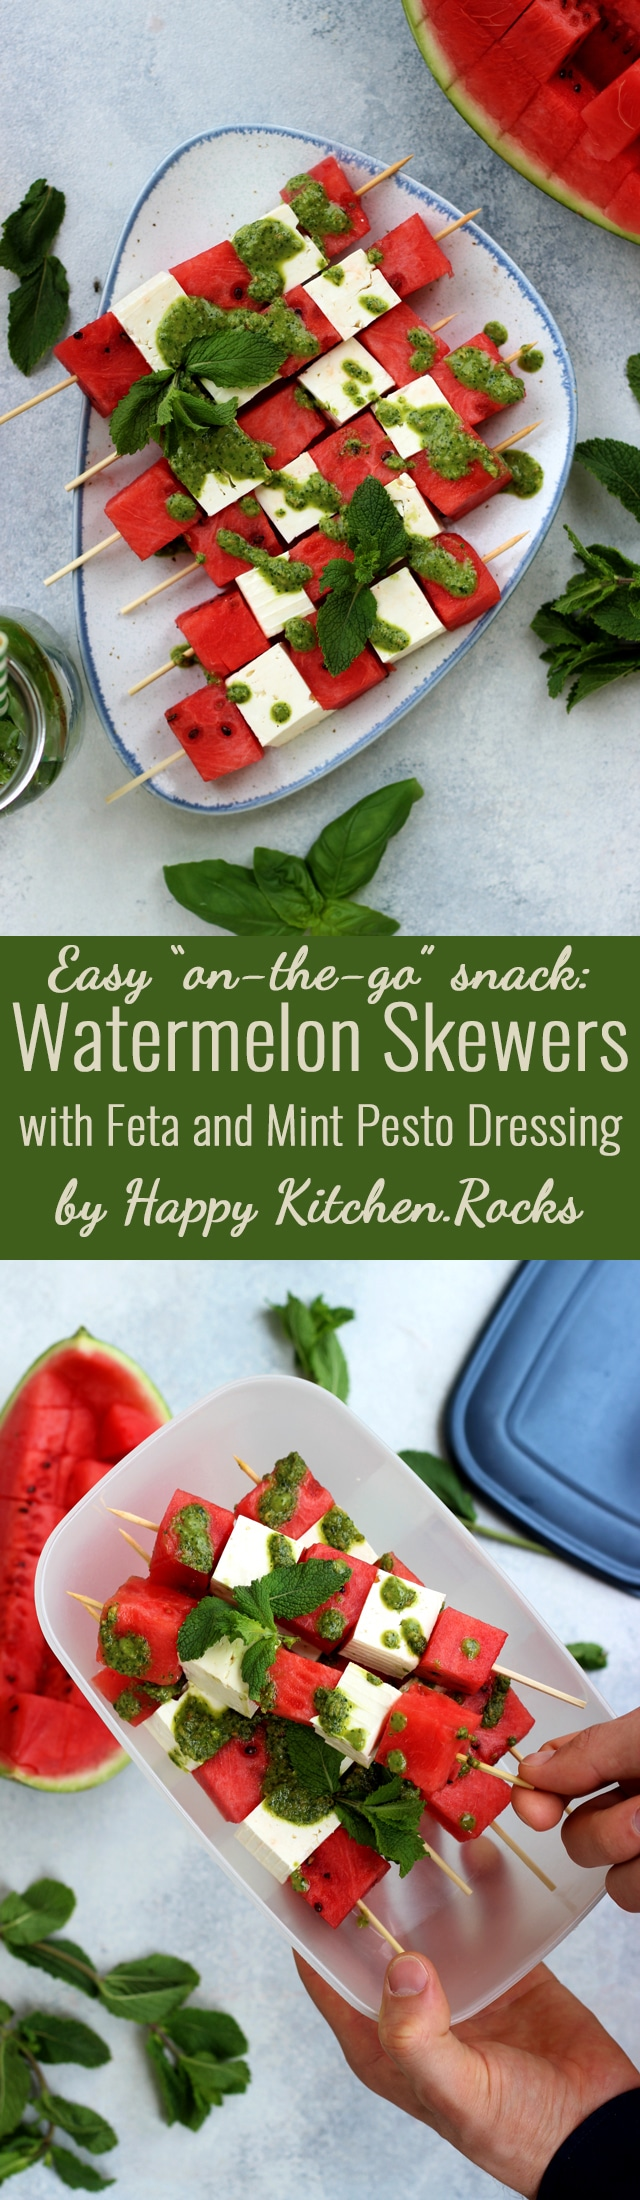 These take-along watermelon skewers with feta and mint pesto dressing are a quick and easy appetizer or snack for your next outdoor gathering, BBQ or picnic! Enjoy these delicious and healthy watermelon skewers on a hot summer day! #WatermelonOnTheGo #ad #summerrecipes #watermelon #feta #skewers #bbq #picnicrecipe #easyrecipes #recipes #cleaneating #pesto #peppermint #appetizer #snacks #onthego #healthysnacks